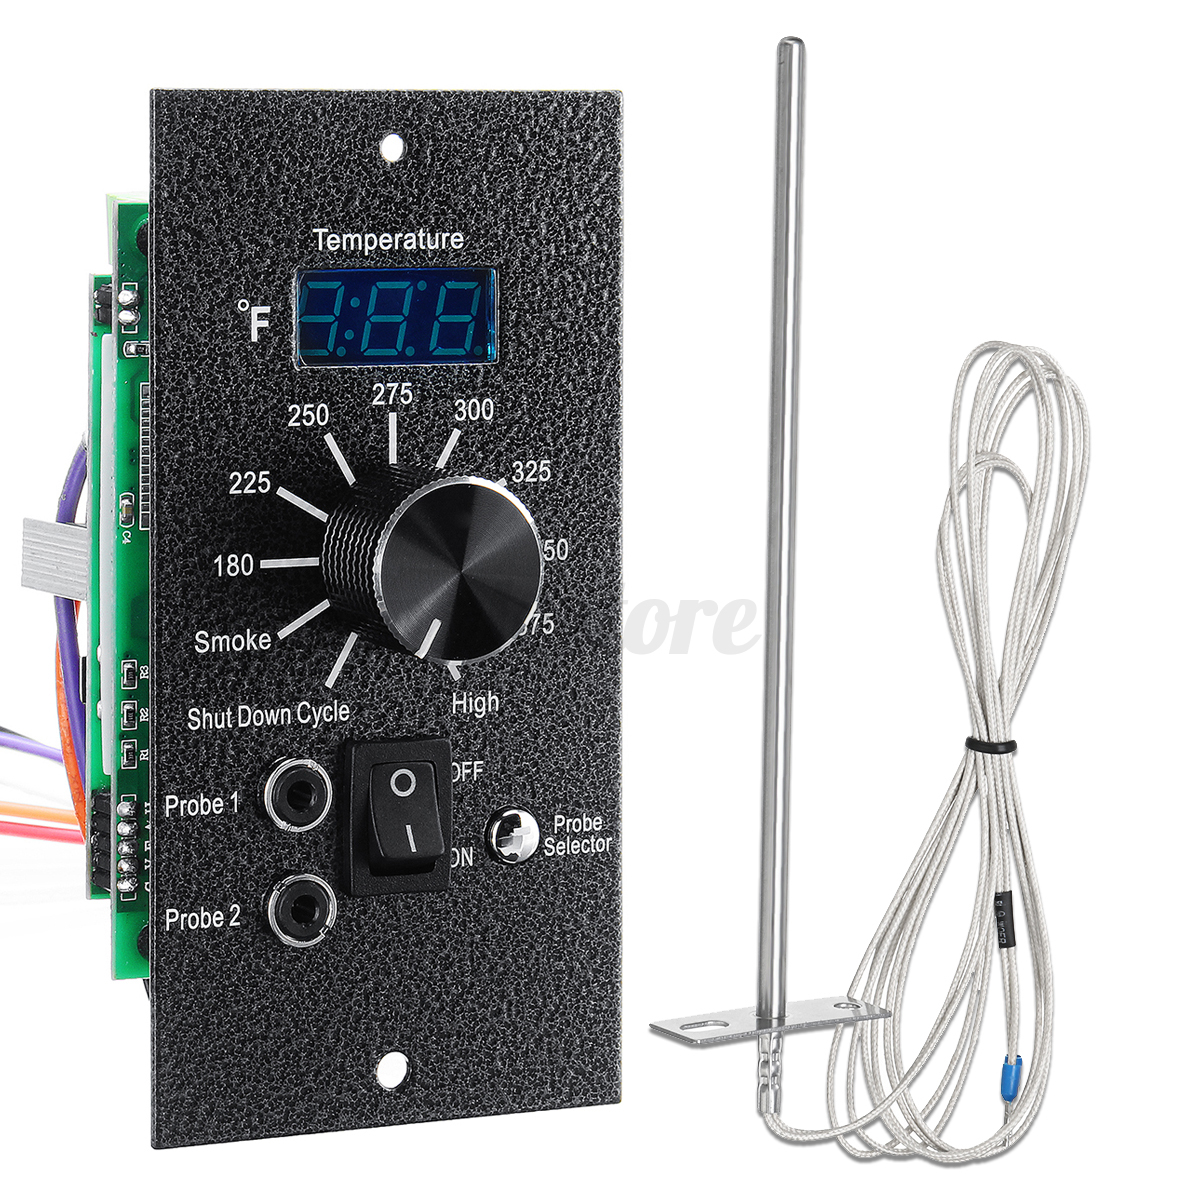 Digital Thermostat Controller Board For TRAEGER Pellet Grill Temp & Meat Probes